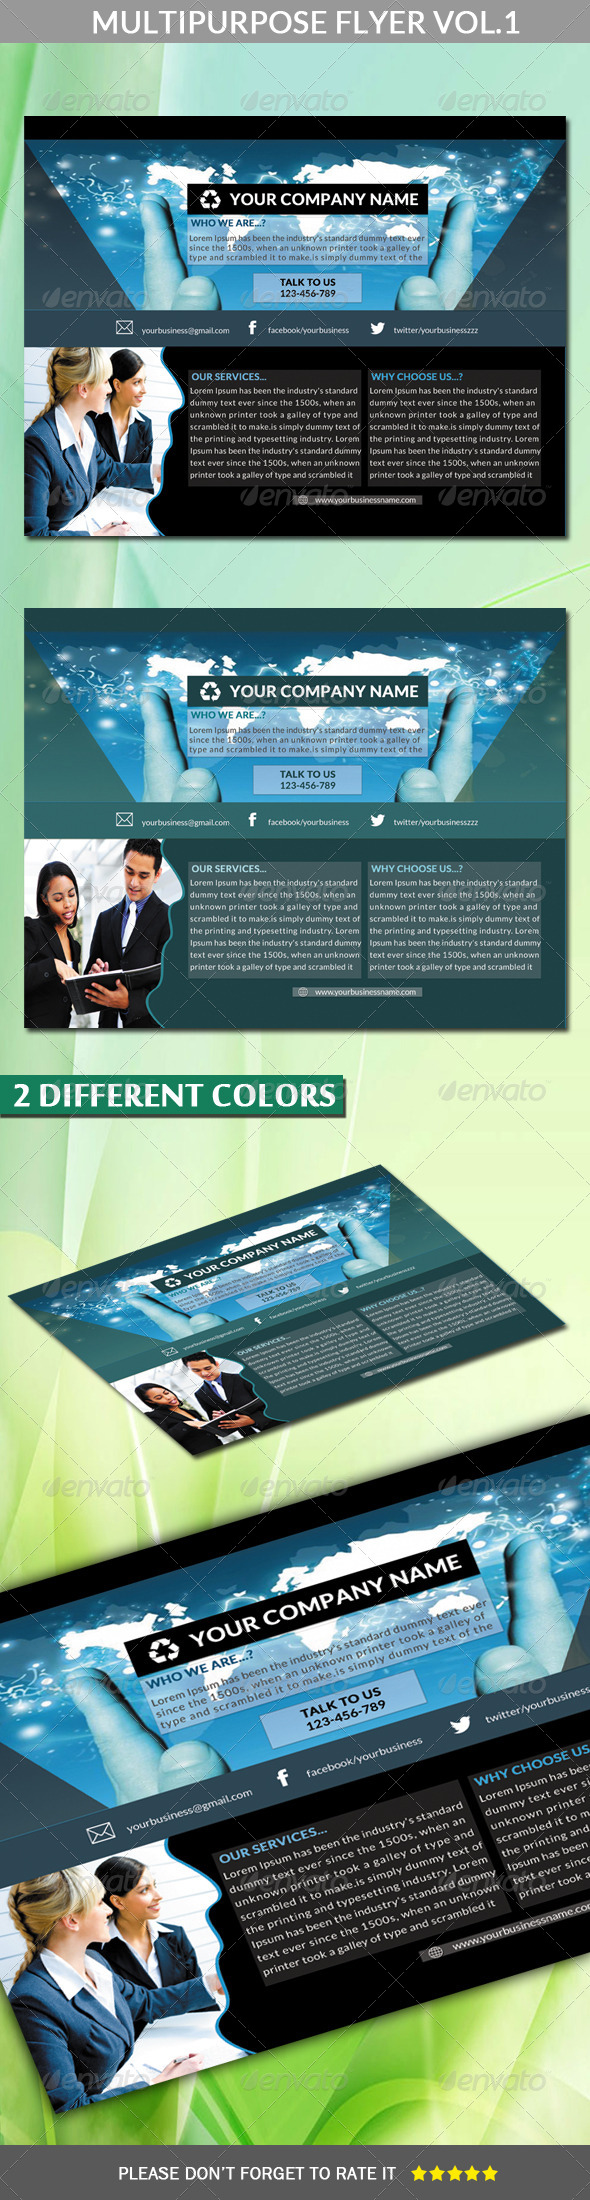 Multipurpose Flyer Vol.1 (Landscape) - Corporate Flyers